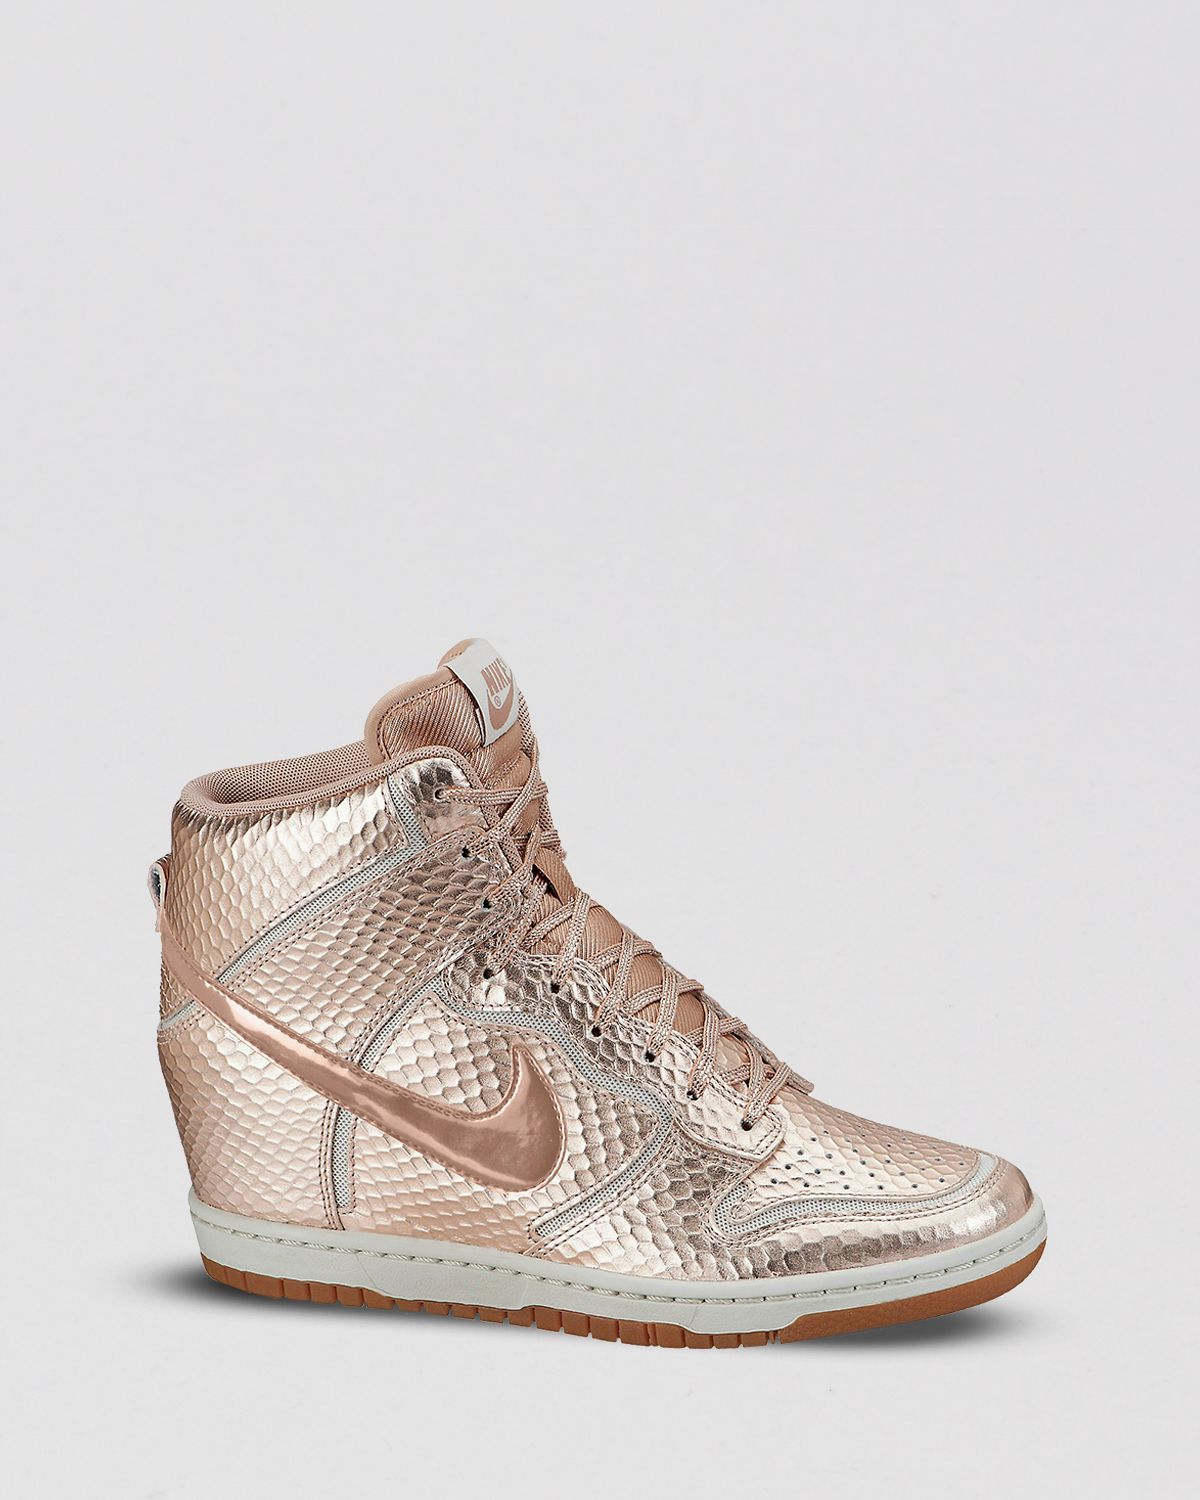 Lyst - Nike High Top Lace Up Wedge Sneakers Womens Dunk Sky Hi in ... e67f8bbd8